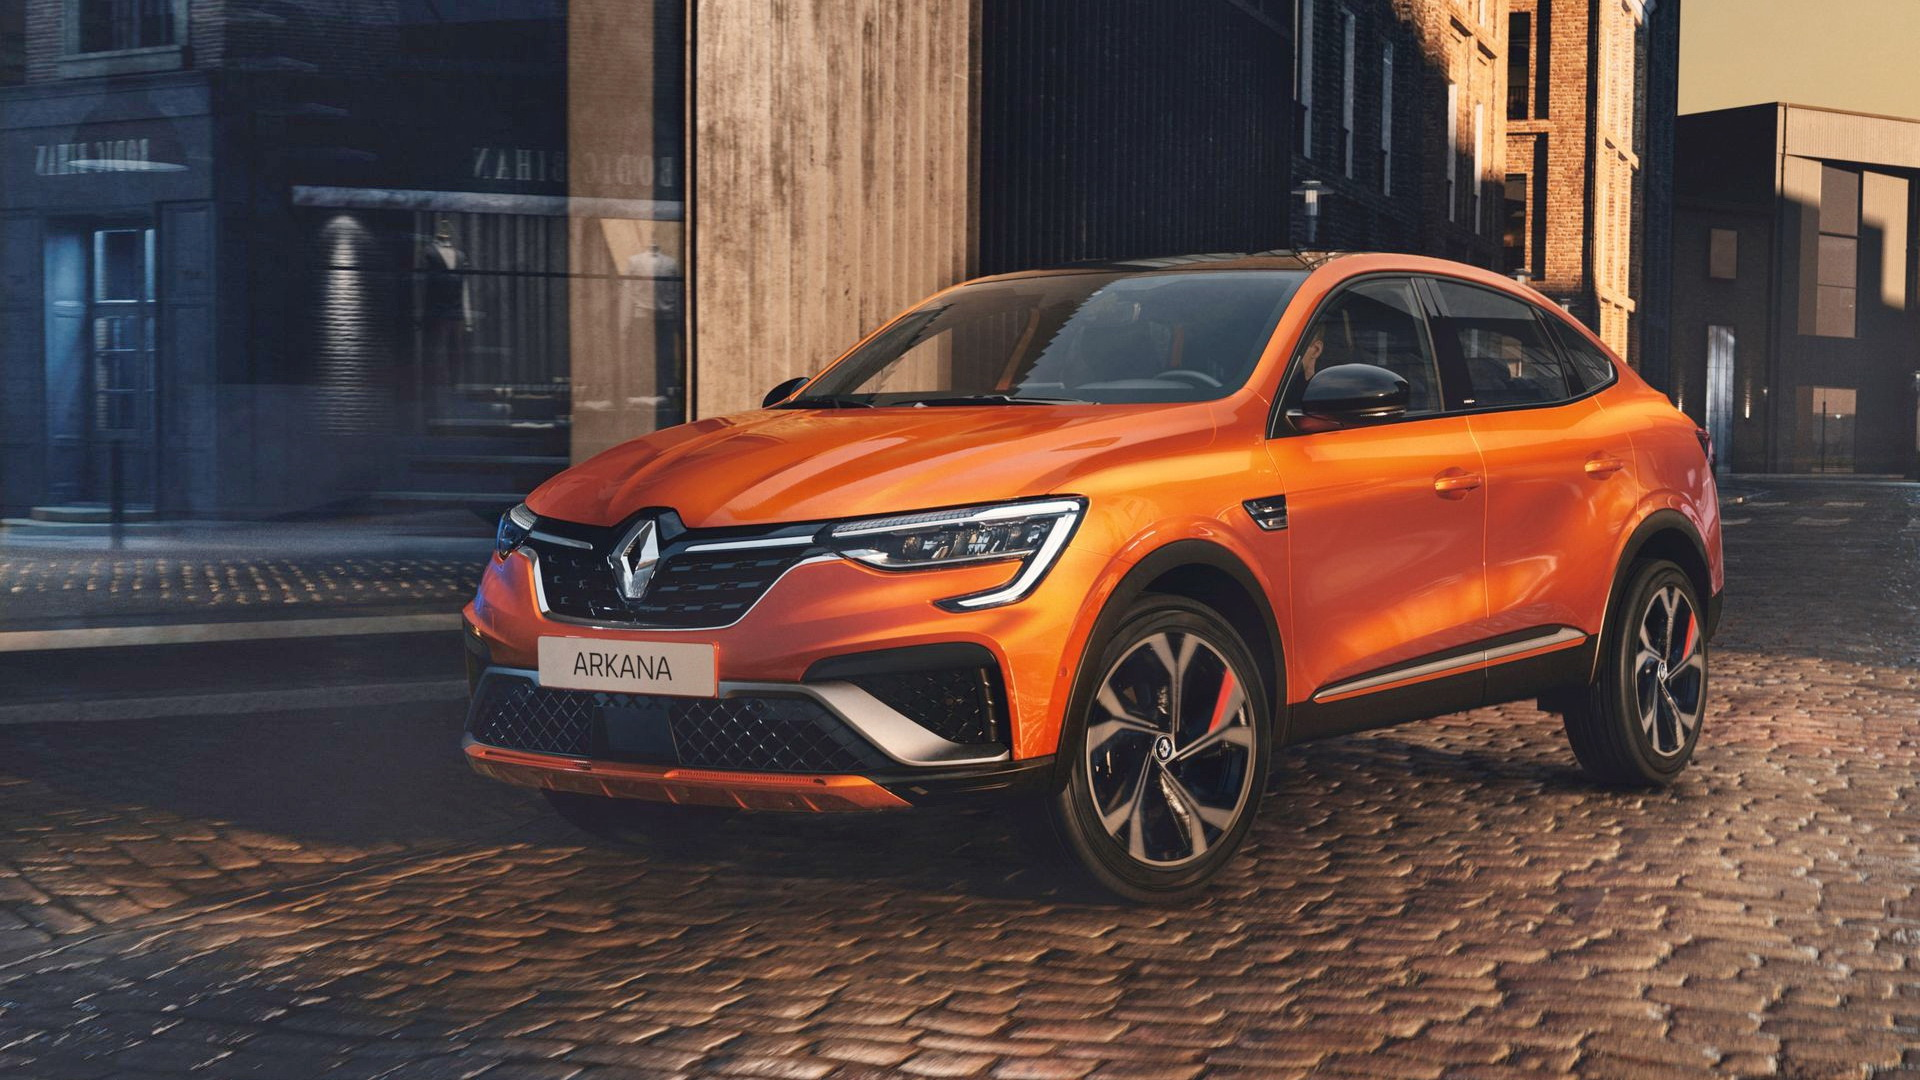 Renault Arkana e-Tech